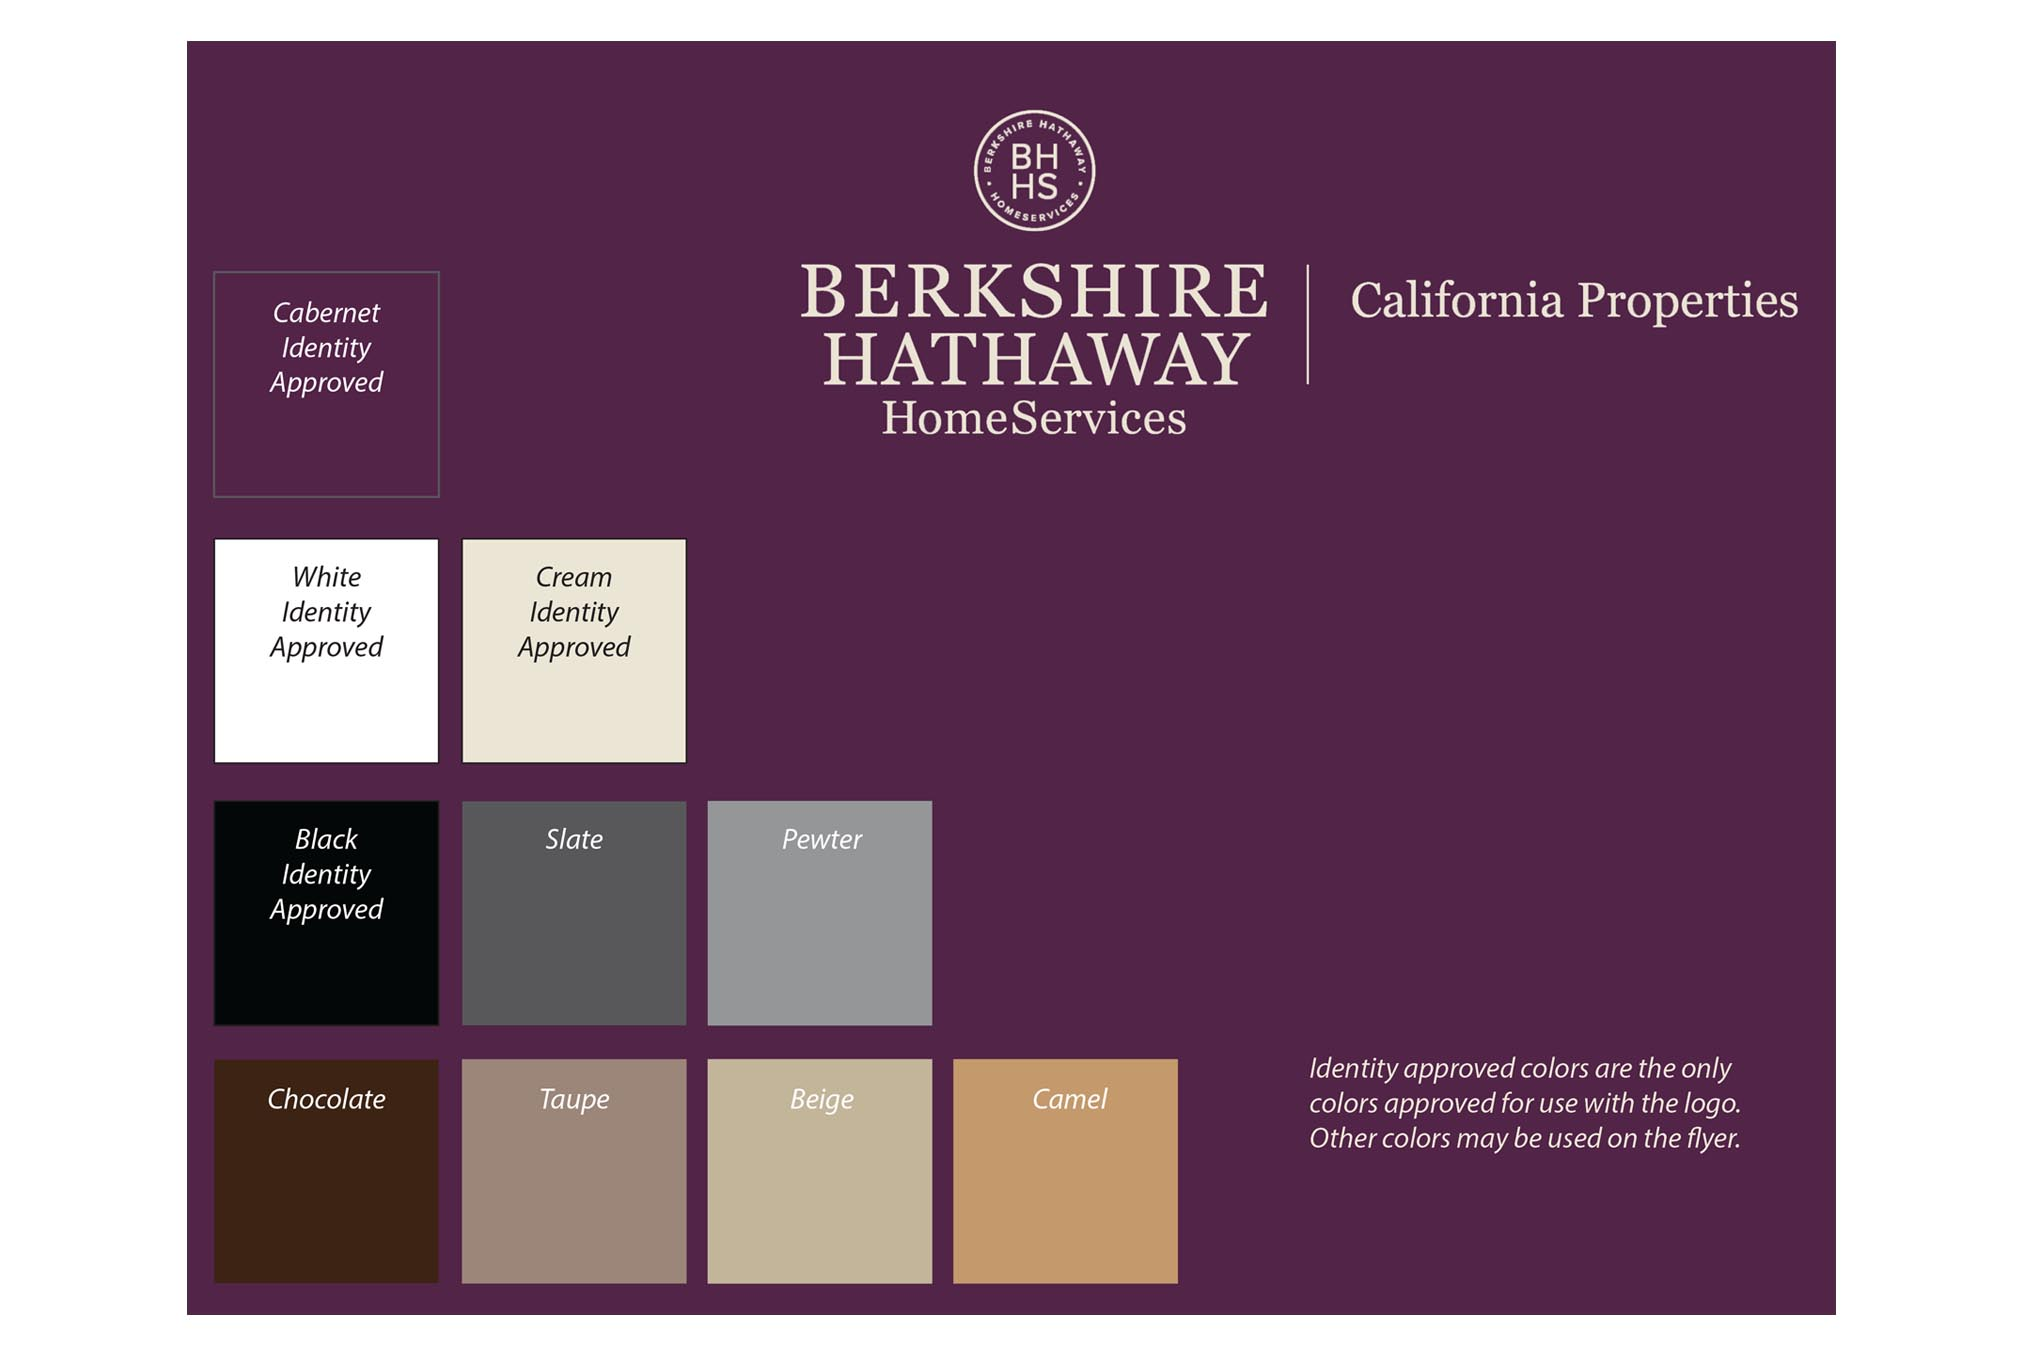 berkshire hathaway home services rebranding collateral | michelle